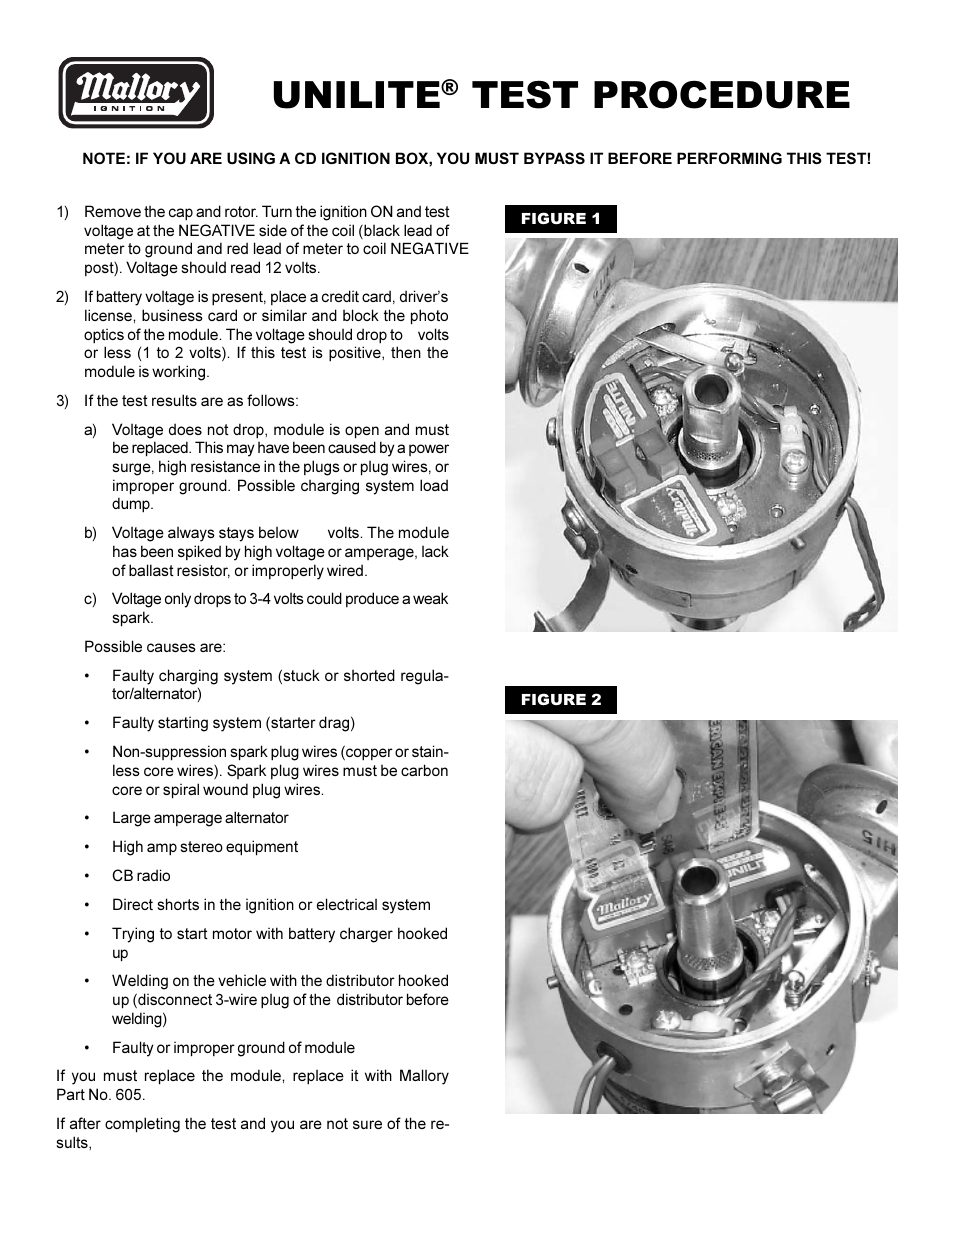 Mallory Ignition Unilite Test Procedure User Manual 1 Page Troubleshooting Also For 605